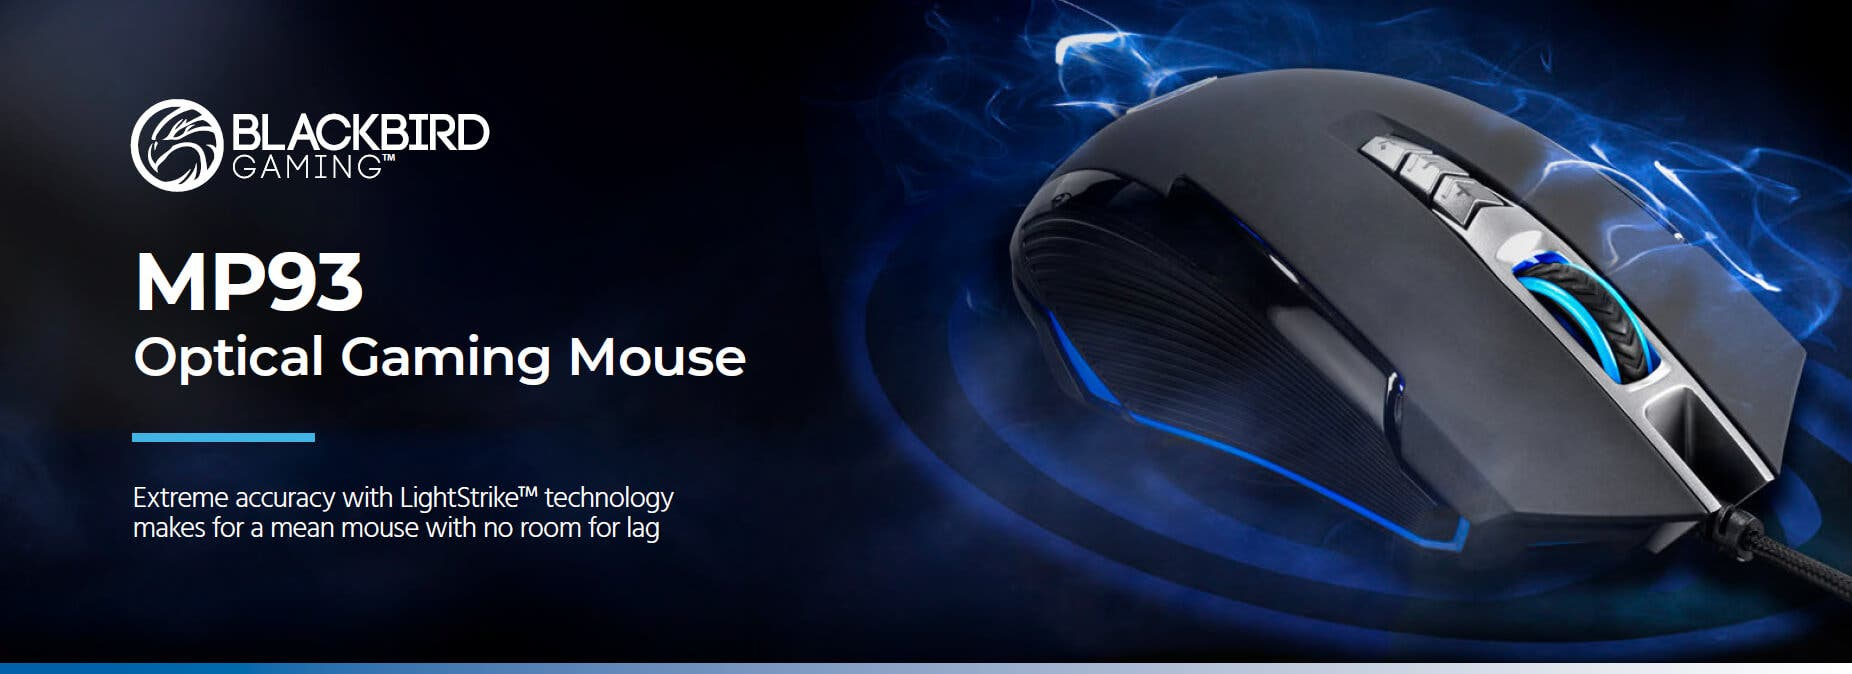 Blackbird Gaming by Monoprice MP93 Optical Gaming Mouse